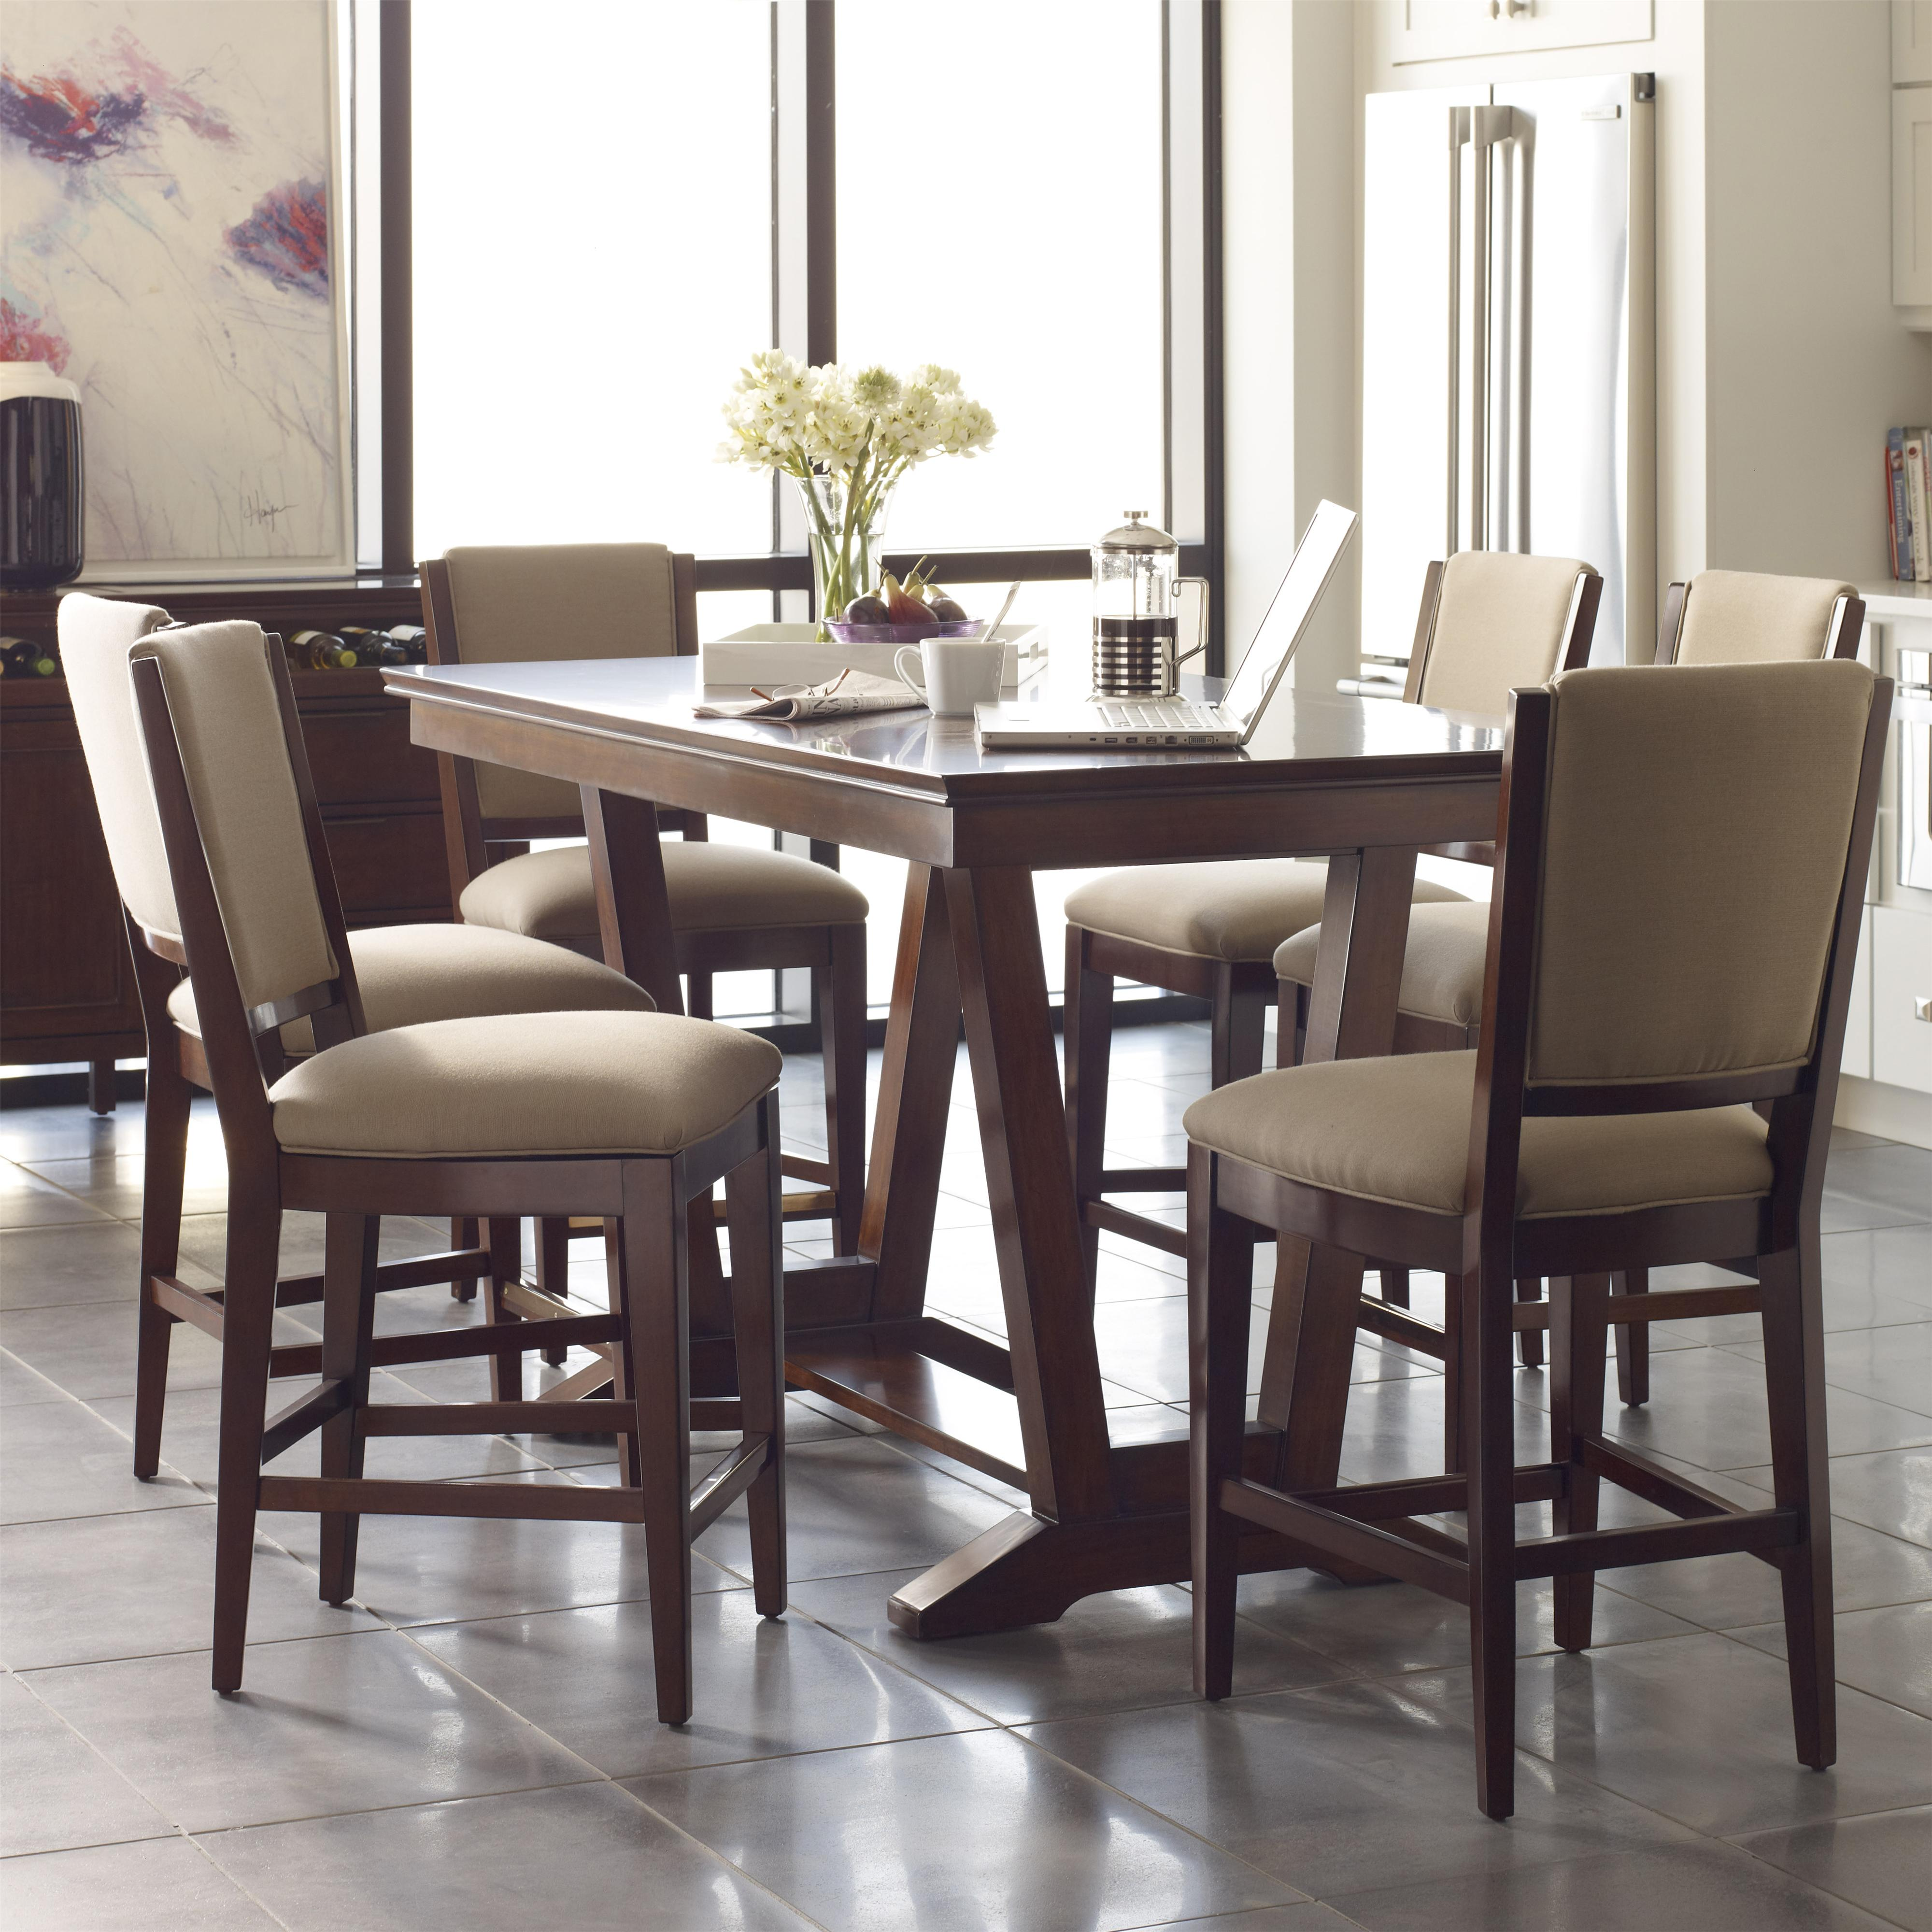 Kincaid Furniture Elise 7 Pc Counter Height Dining Set - Item Number 77-059 & Kincaid Furniture Elise 7 Pc Counter Height Dining Set | Northeast ...